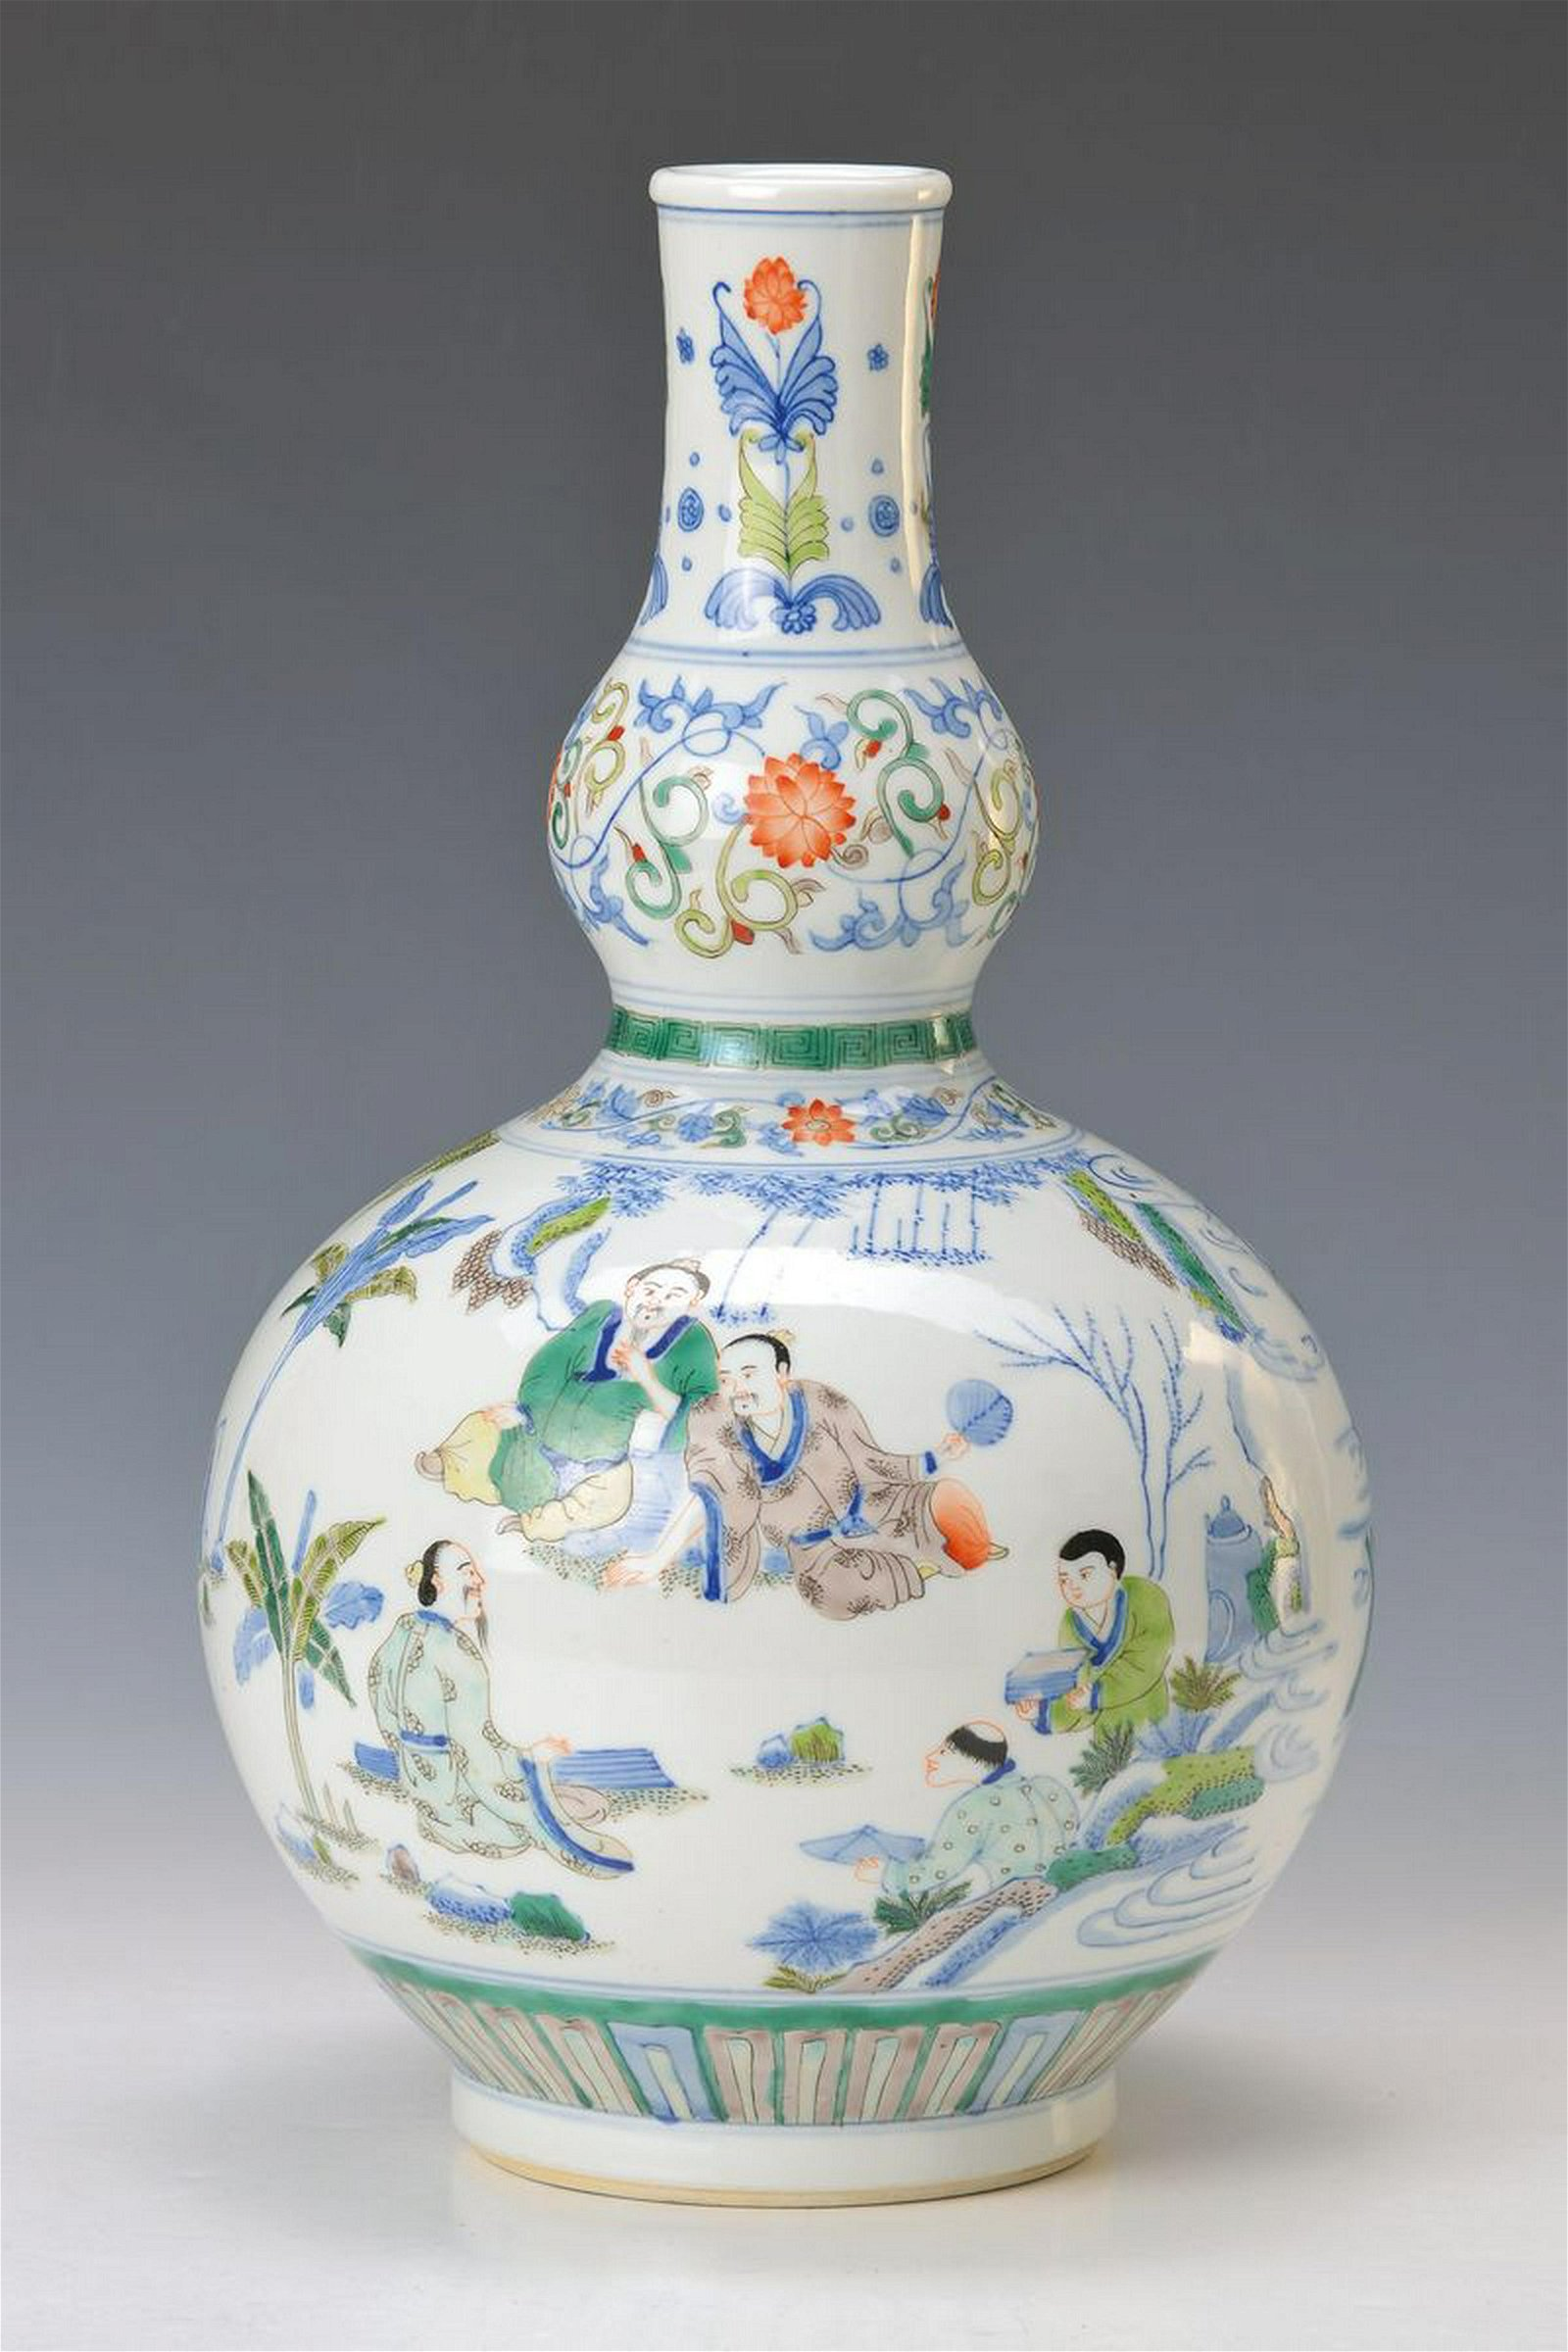 vase, China after the model of the Kang hsi period